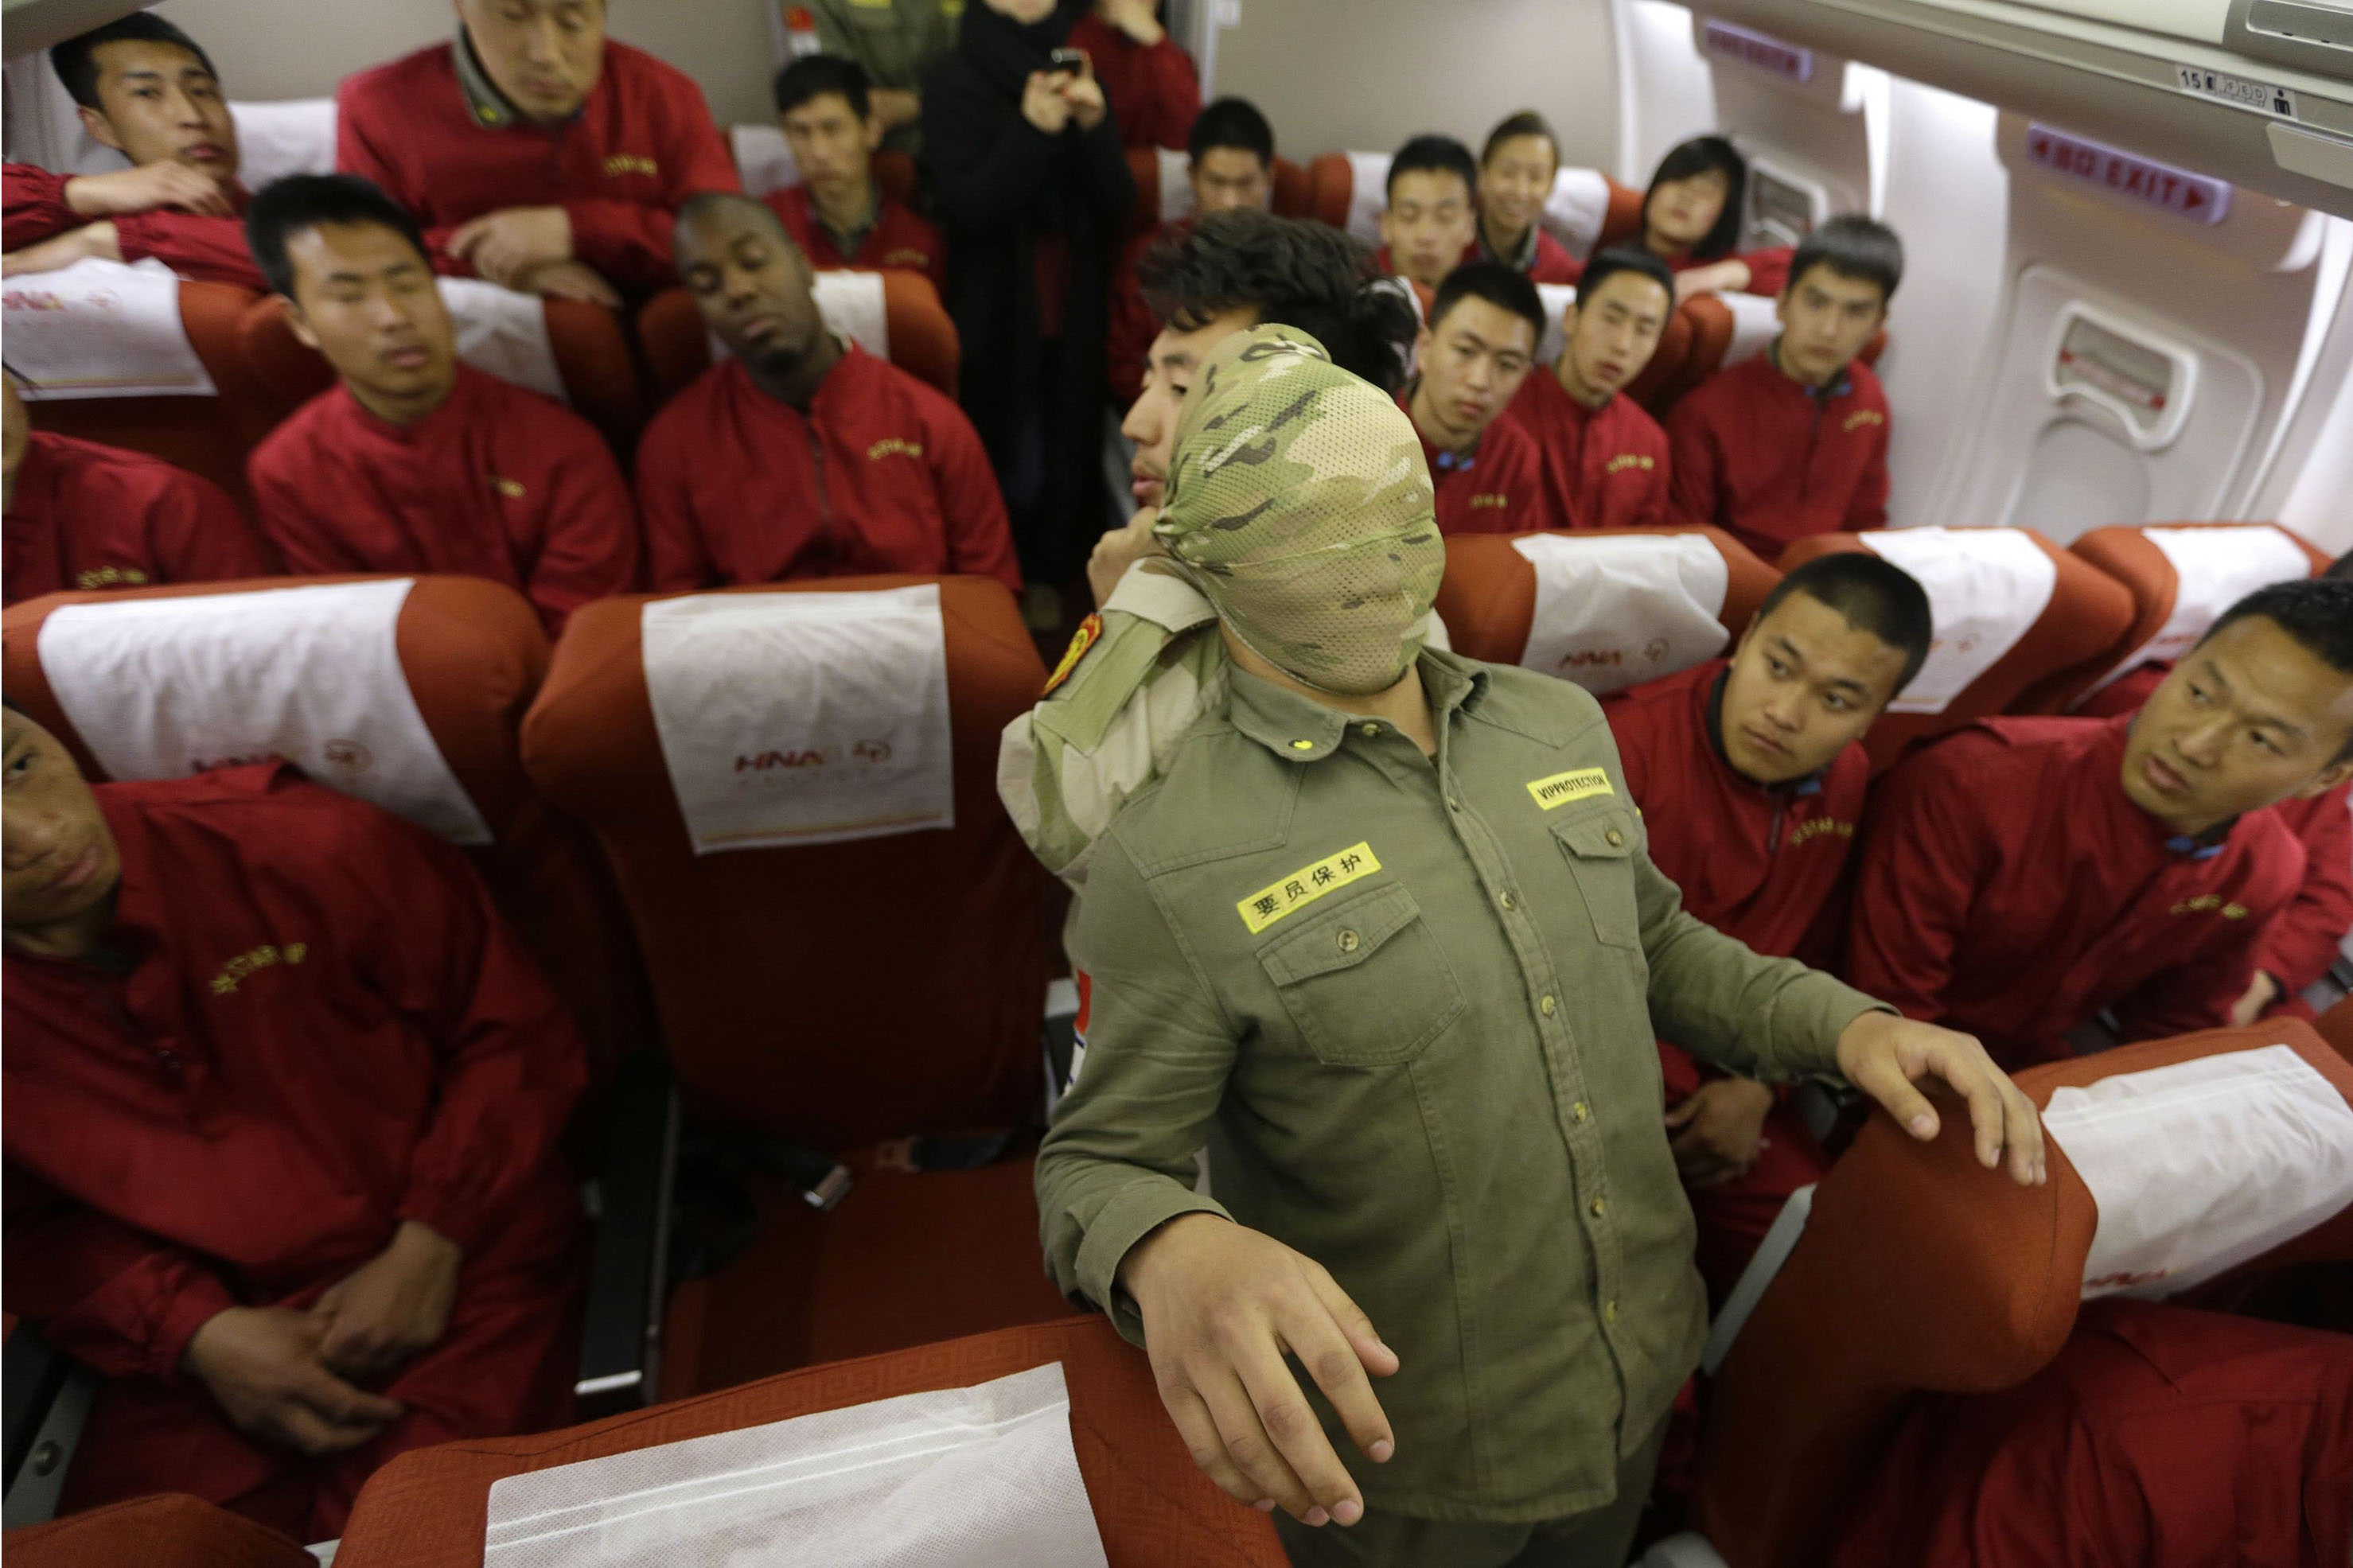 Trainees of the Tianjiao Special Guard/Security Consultant bodyguard training camp watch their instructor use a scarf to cover a student's head during a demonstration of close-quarter combat skills at a special course on flight safety inside a scale model of a passenger jet at a flight attendant training centre on the outskirts of Beijing, March 18, 2014. Inspired by the missing Malaysia Airlines Flight MH370, the company wanted to emphasize the importance of aviation safety by teaching their trainees emergency evacuation procedures and close-quarter combat skills to handle situations such as natural disasters and plane hijacks, according to the company. REUTERS/Jason Lee (CHINA - Tags: SOCIETY TRANSPORT)